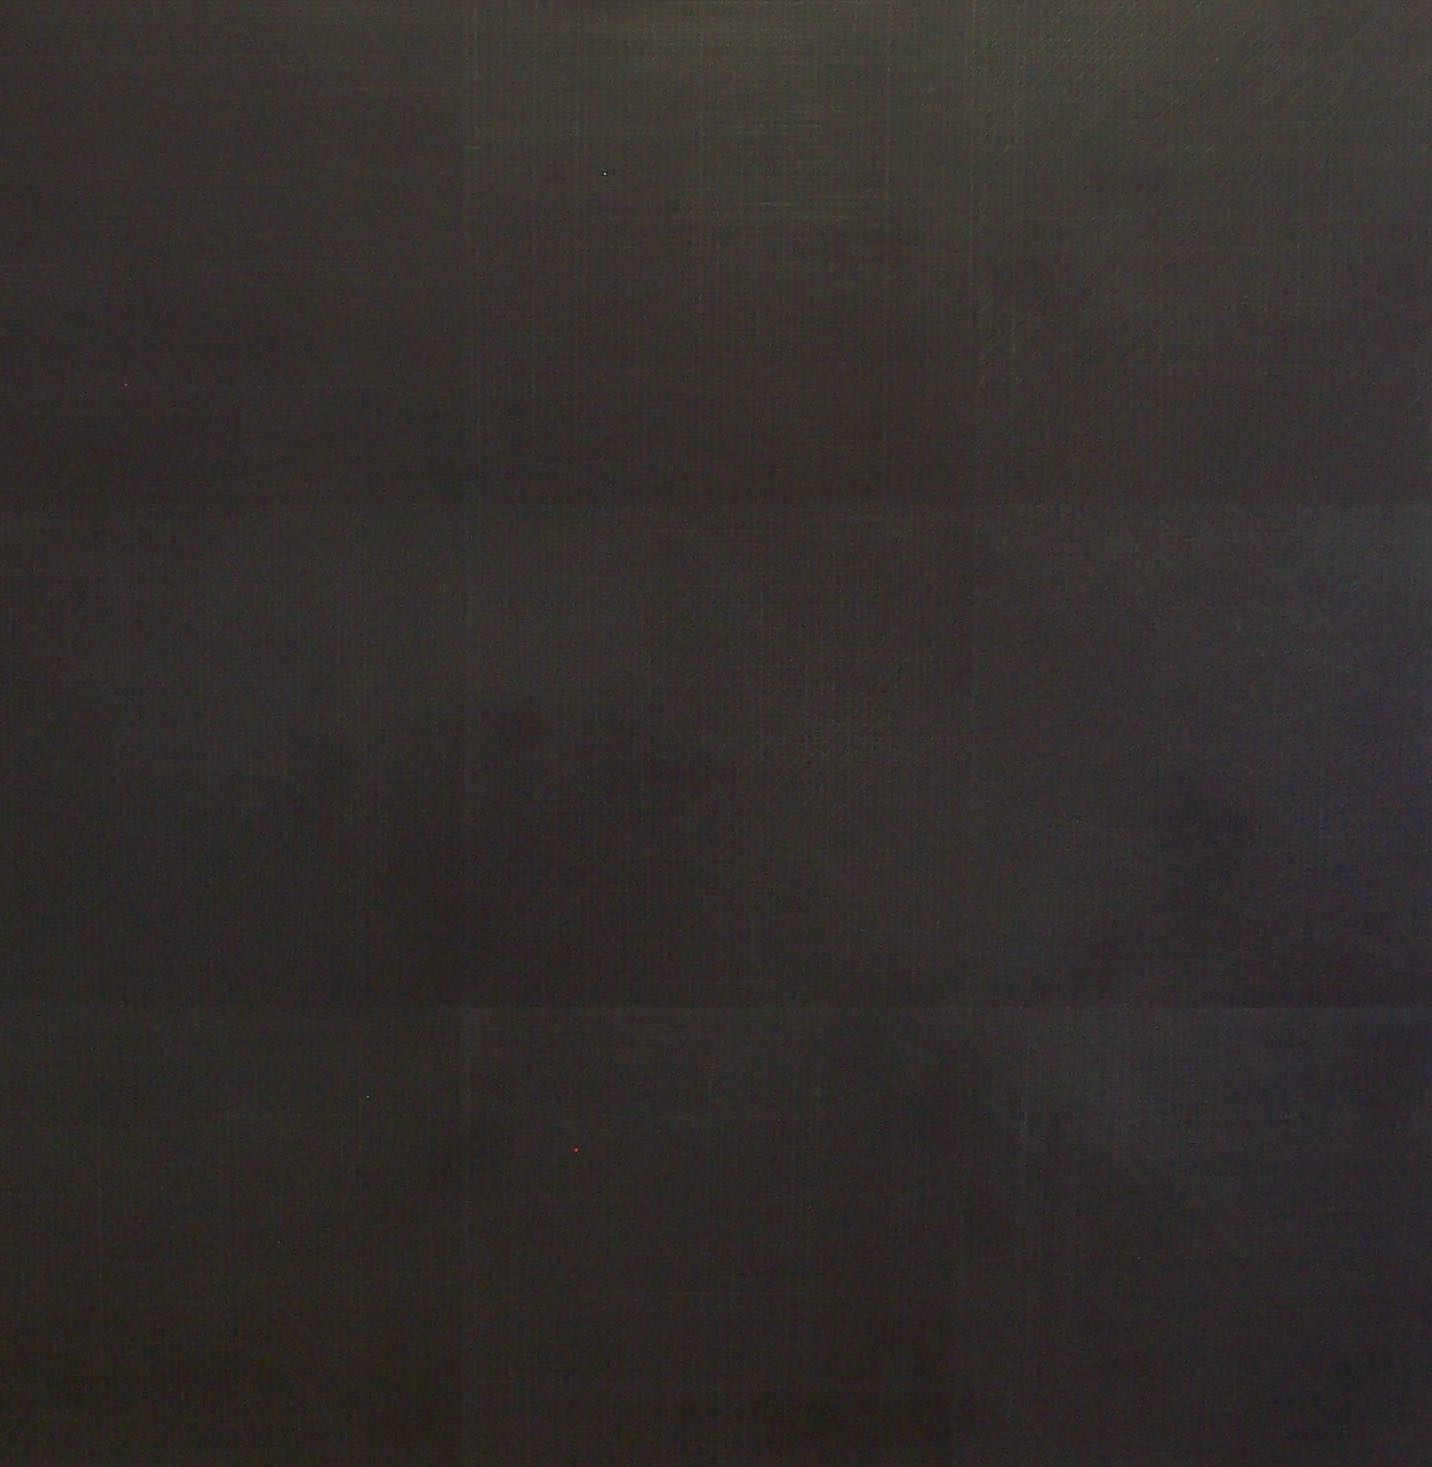 Diptych Dark 120x120cm Oil and Graphite on Linen 2009